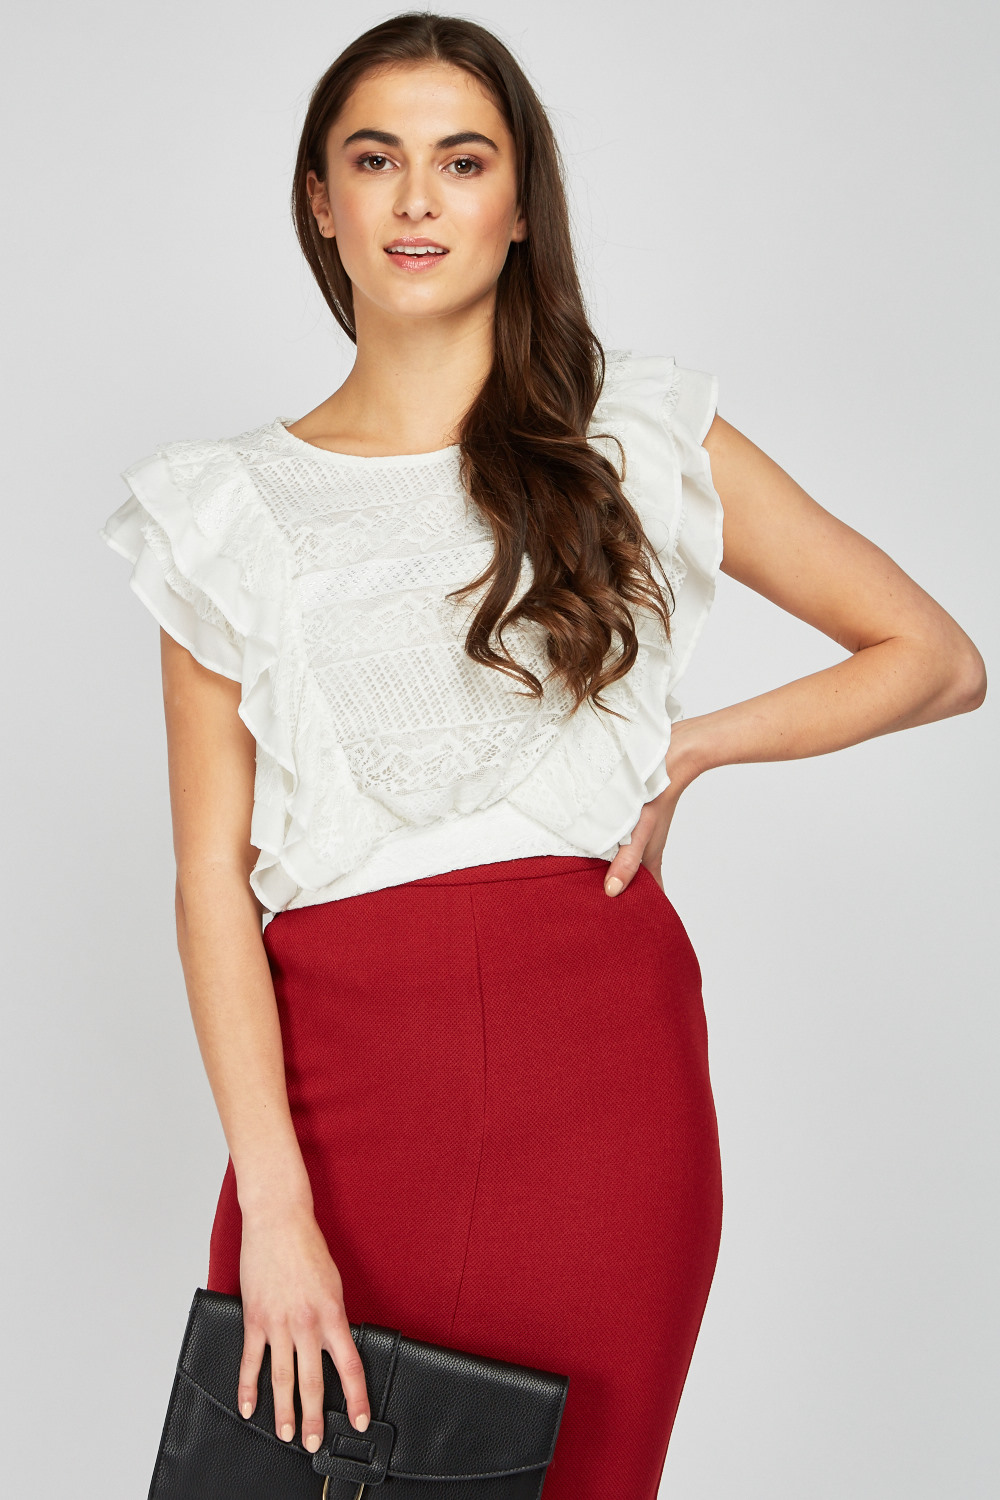 Ruffle Lace Crop Top 4 Colours Just 163 5